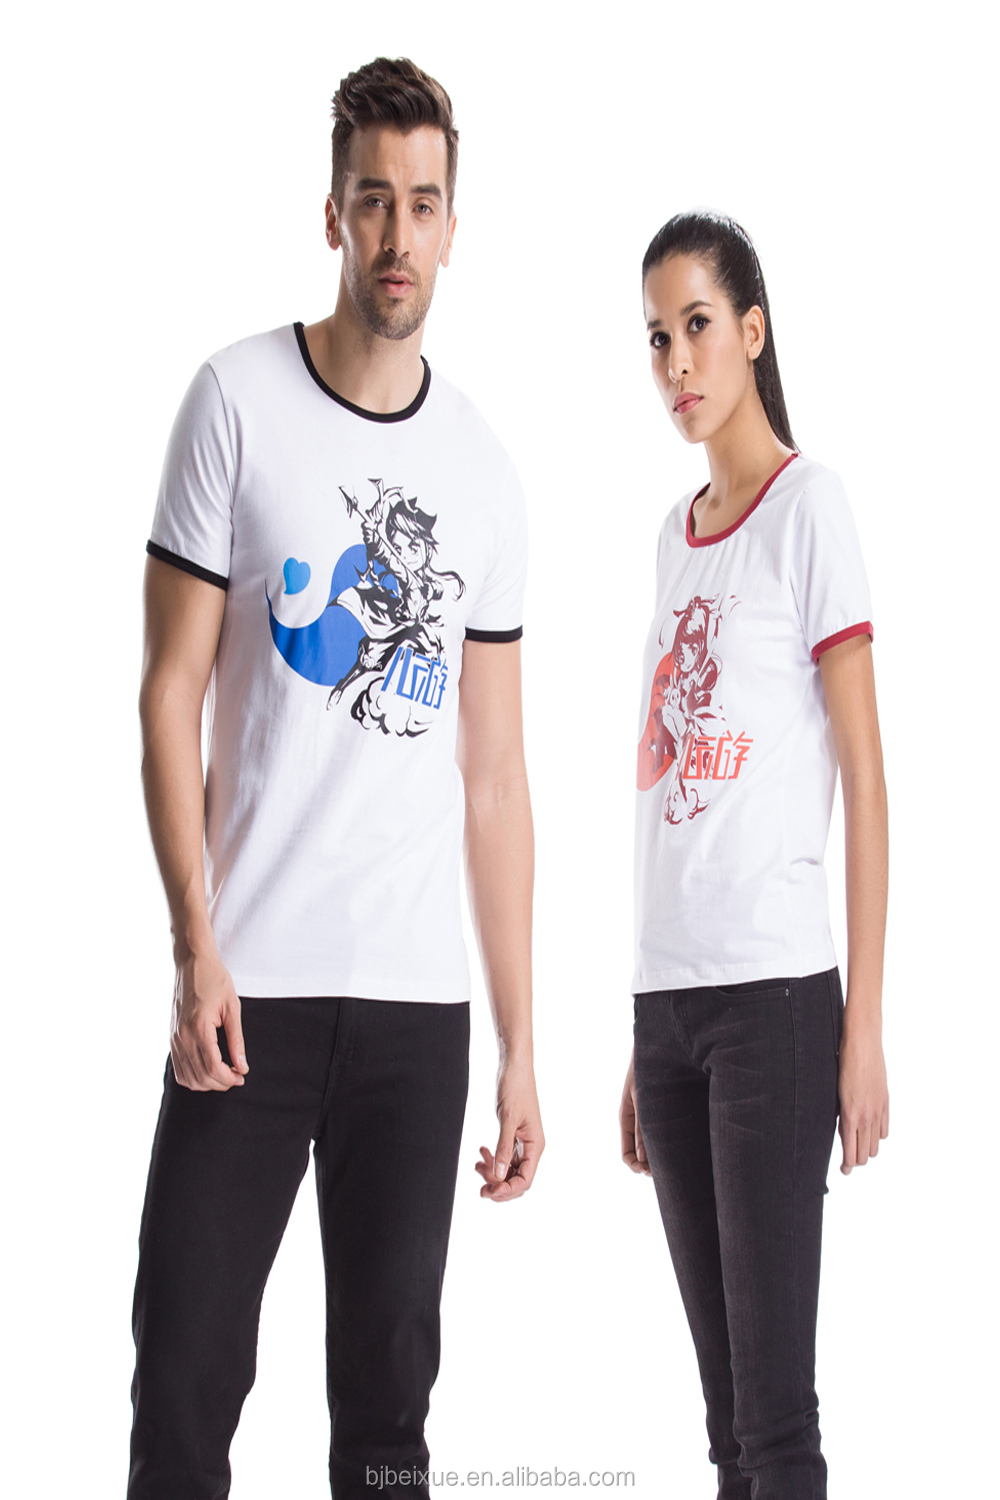 Couple t shirt design white - White Original Cute Couple Shirt Design For Lovers Design Factory